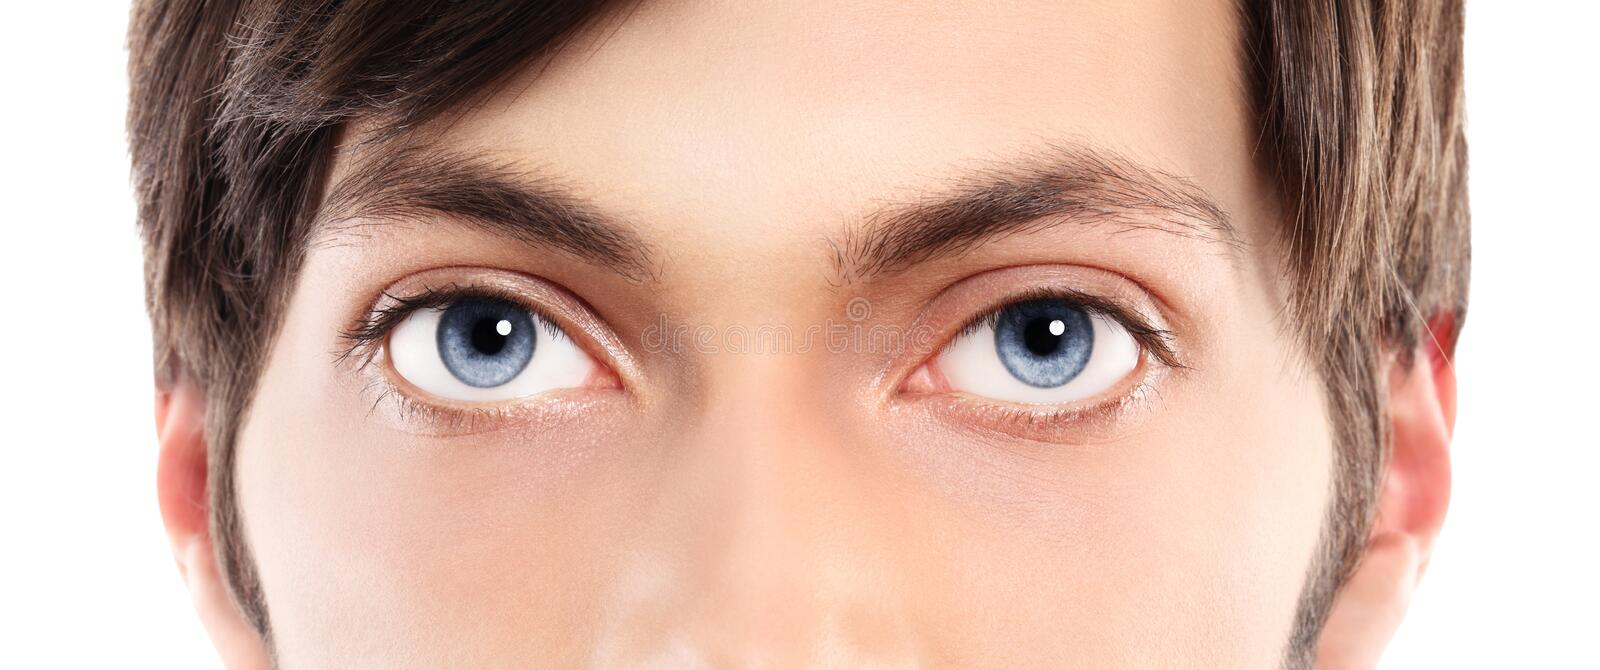 Closeup of blue eyes from a young man royalty free stock photo